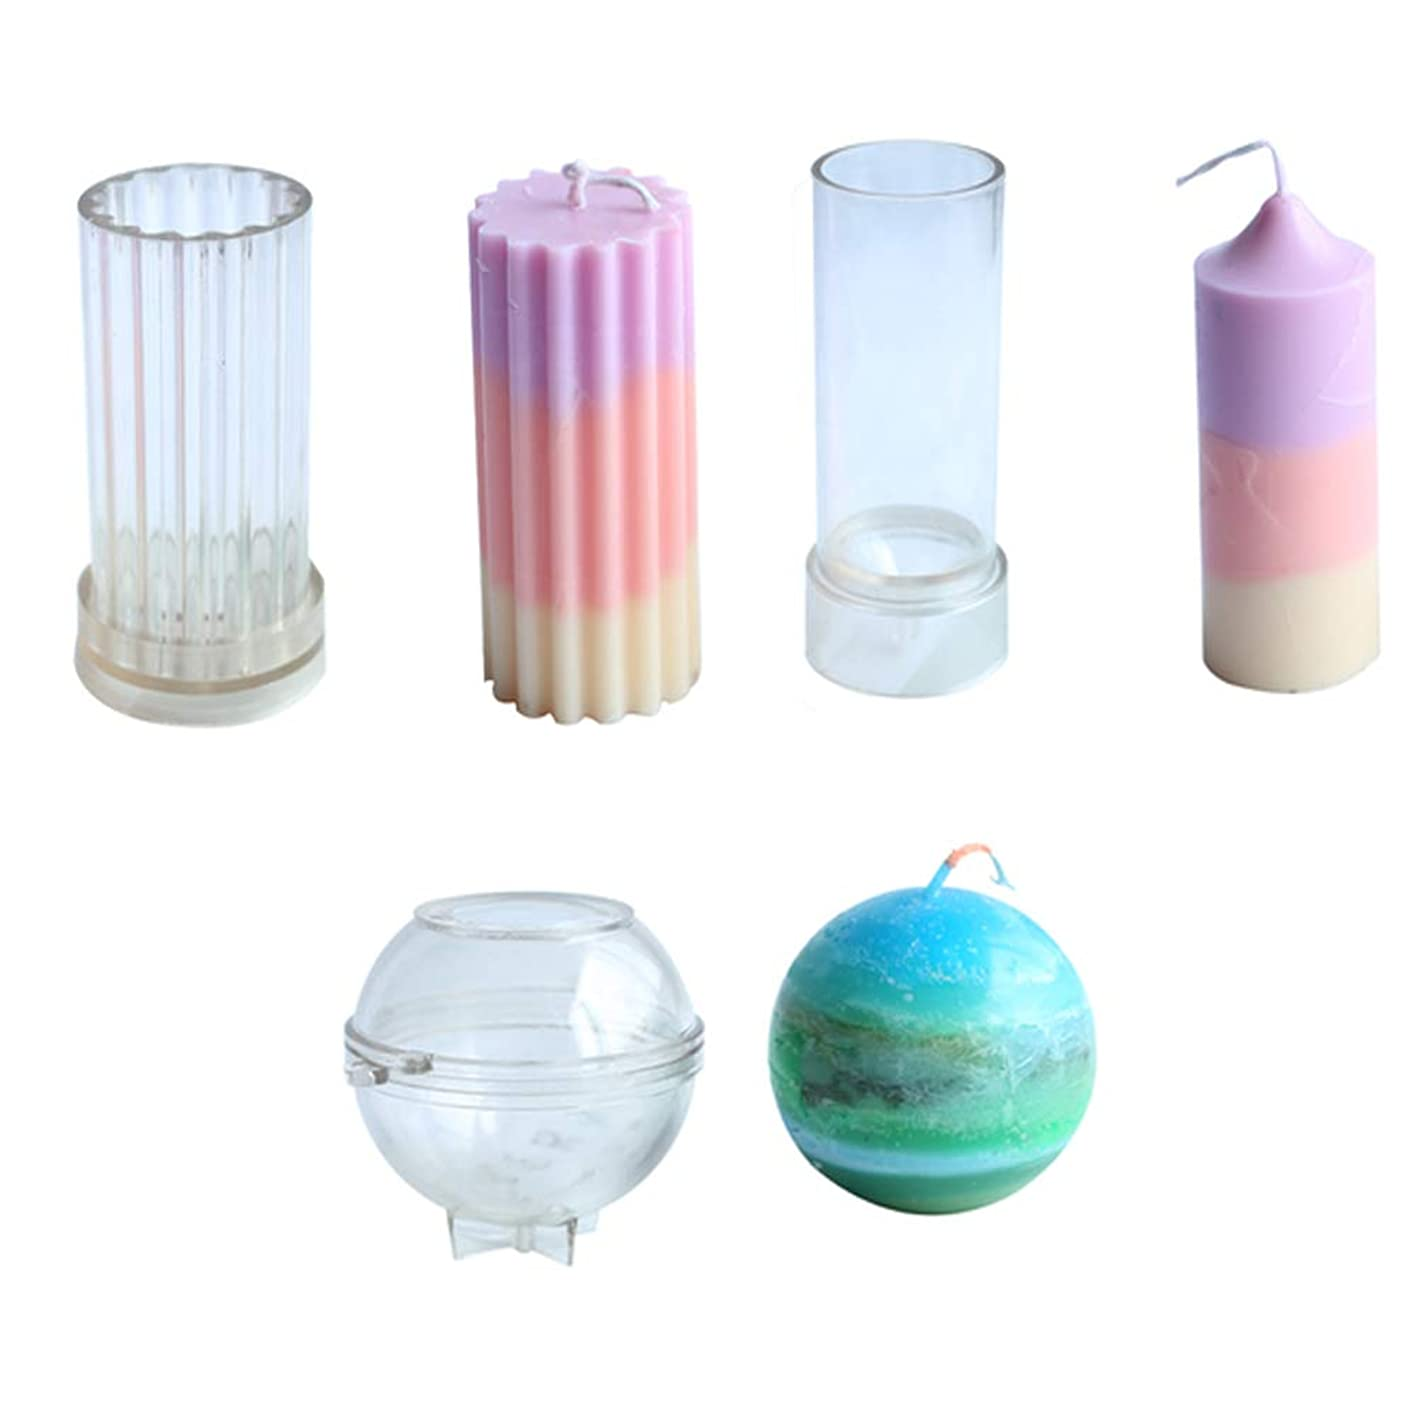 Candle Molds for Candle Making Plastic Pillar Candle Making Kit Ball Sphere Mold Large Cylinder Rib Candle Making Molds DIY Candle Making Supplies Set of 3 PCS s57863318976394